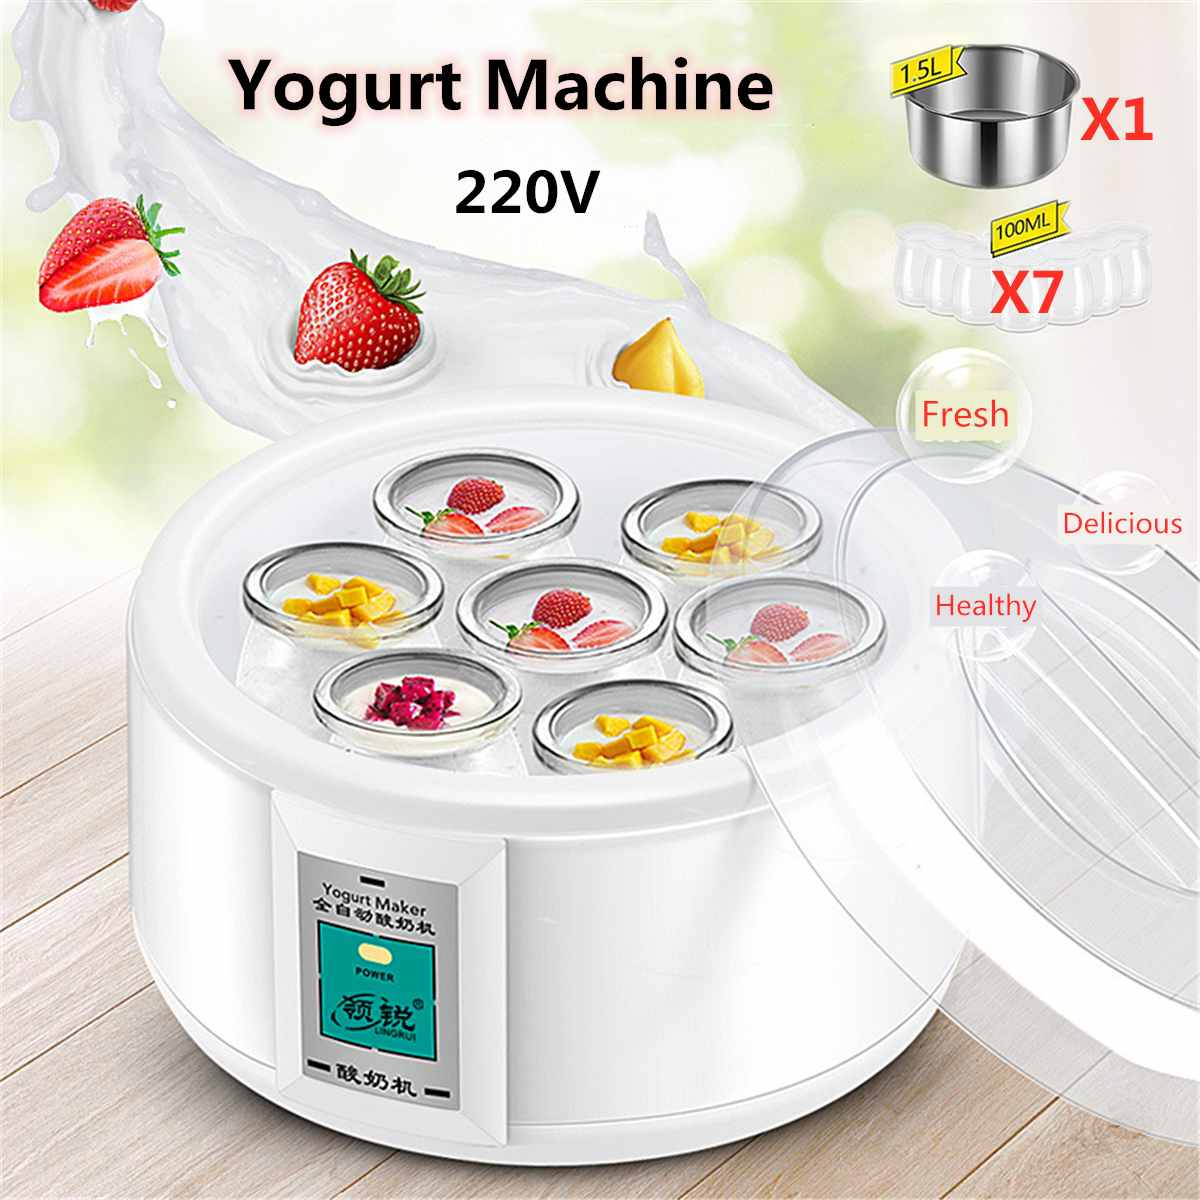 1.5L Electric Yogurt Maker Yogurt DIY Tool Kitchen Appliances Automatic Yogurt Maker with 7 Jars Liner Material Stainless Steel1.5L Electric Yogurt Maker Yogurt DIY Tool Kitchen Appliances Automatic Yogurt Maker with 7 Jars Liner Material Stainless Steel